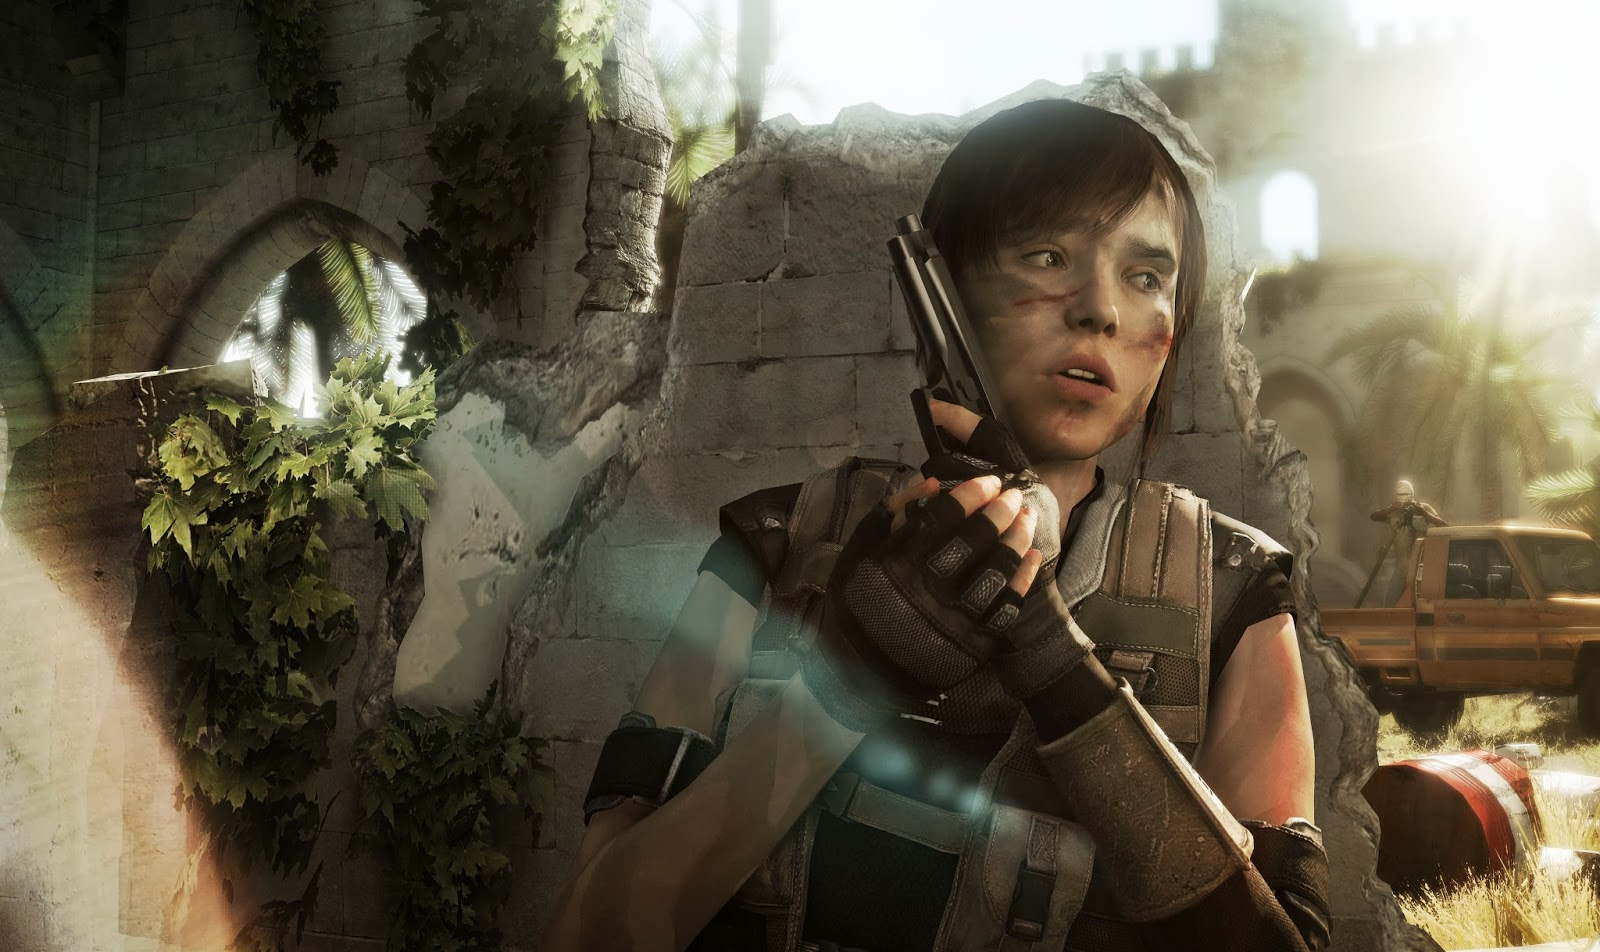 Beyond: Two Souls Jodie Executing Orders C.I.A Mission